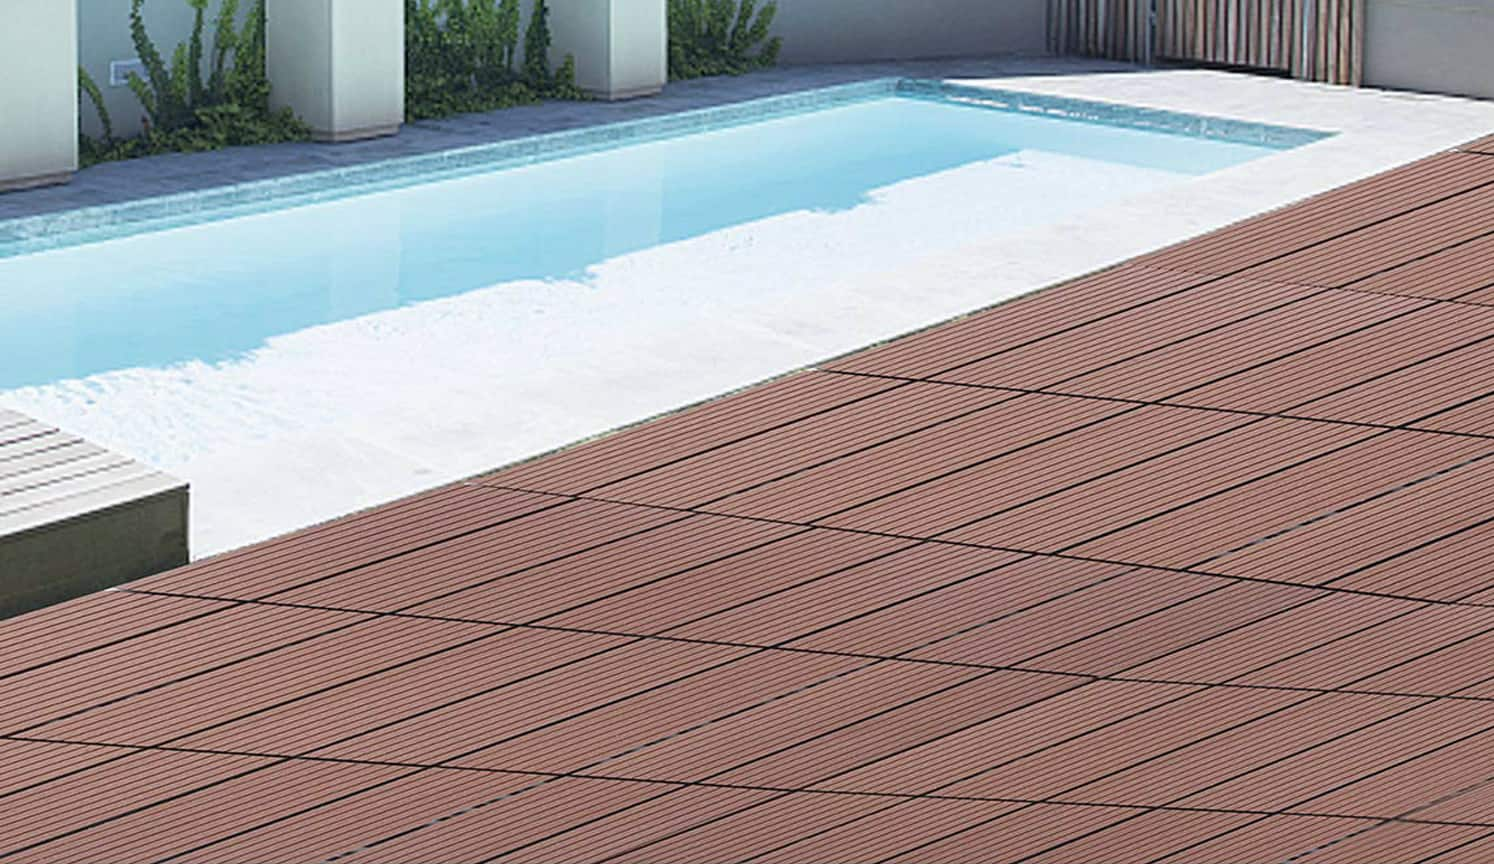 Interlocking Pavers as the first related product of Outdoor Patio Pavers